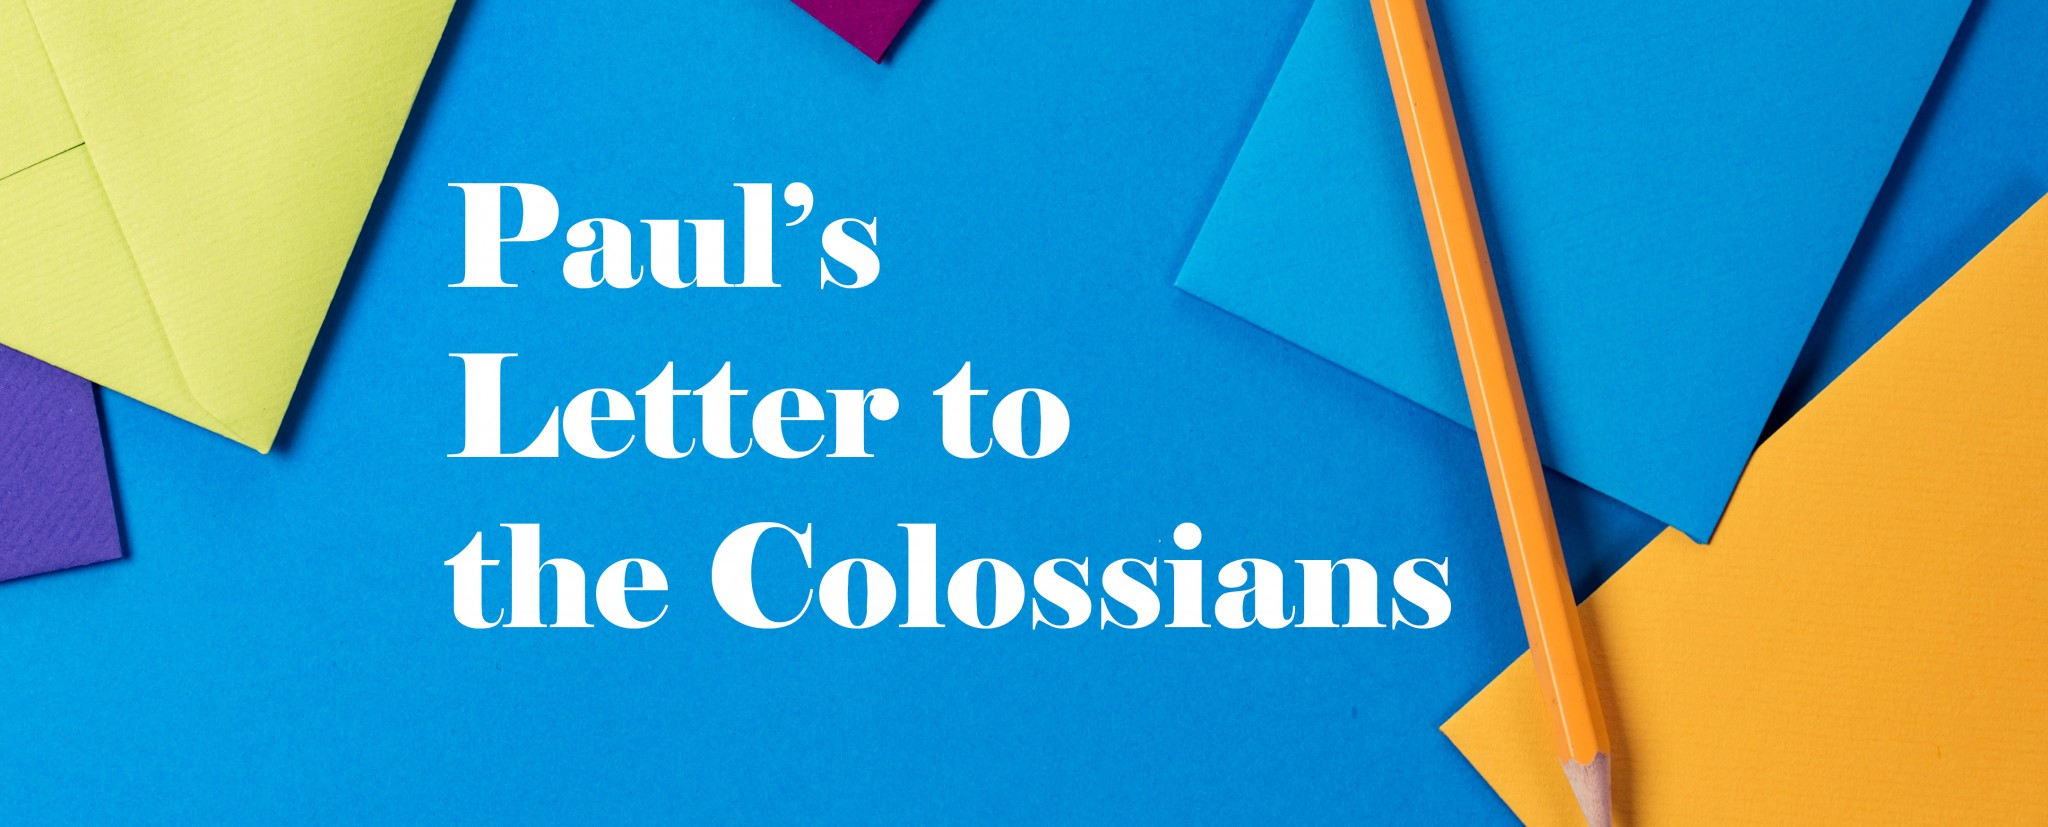 Pauls Letter to the Colossians